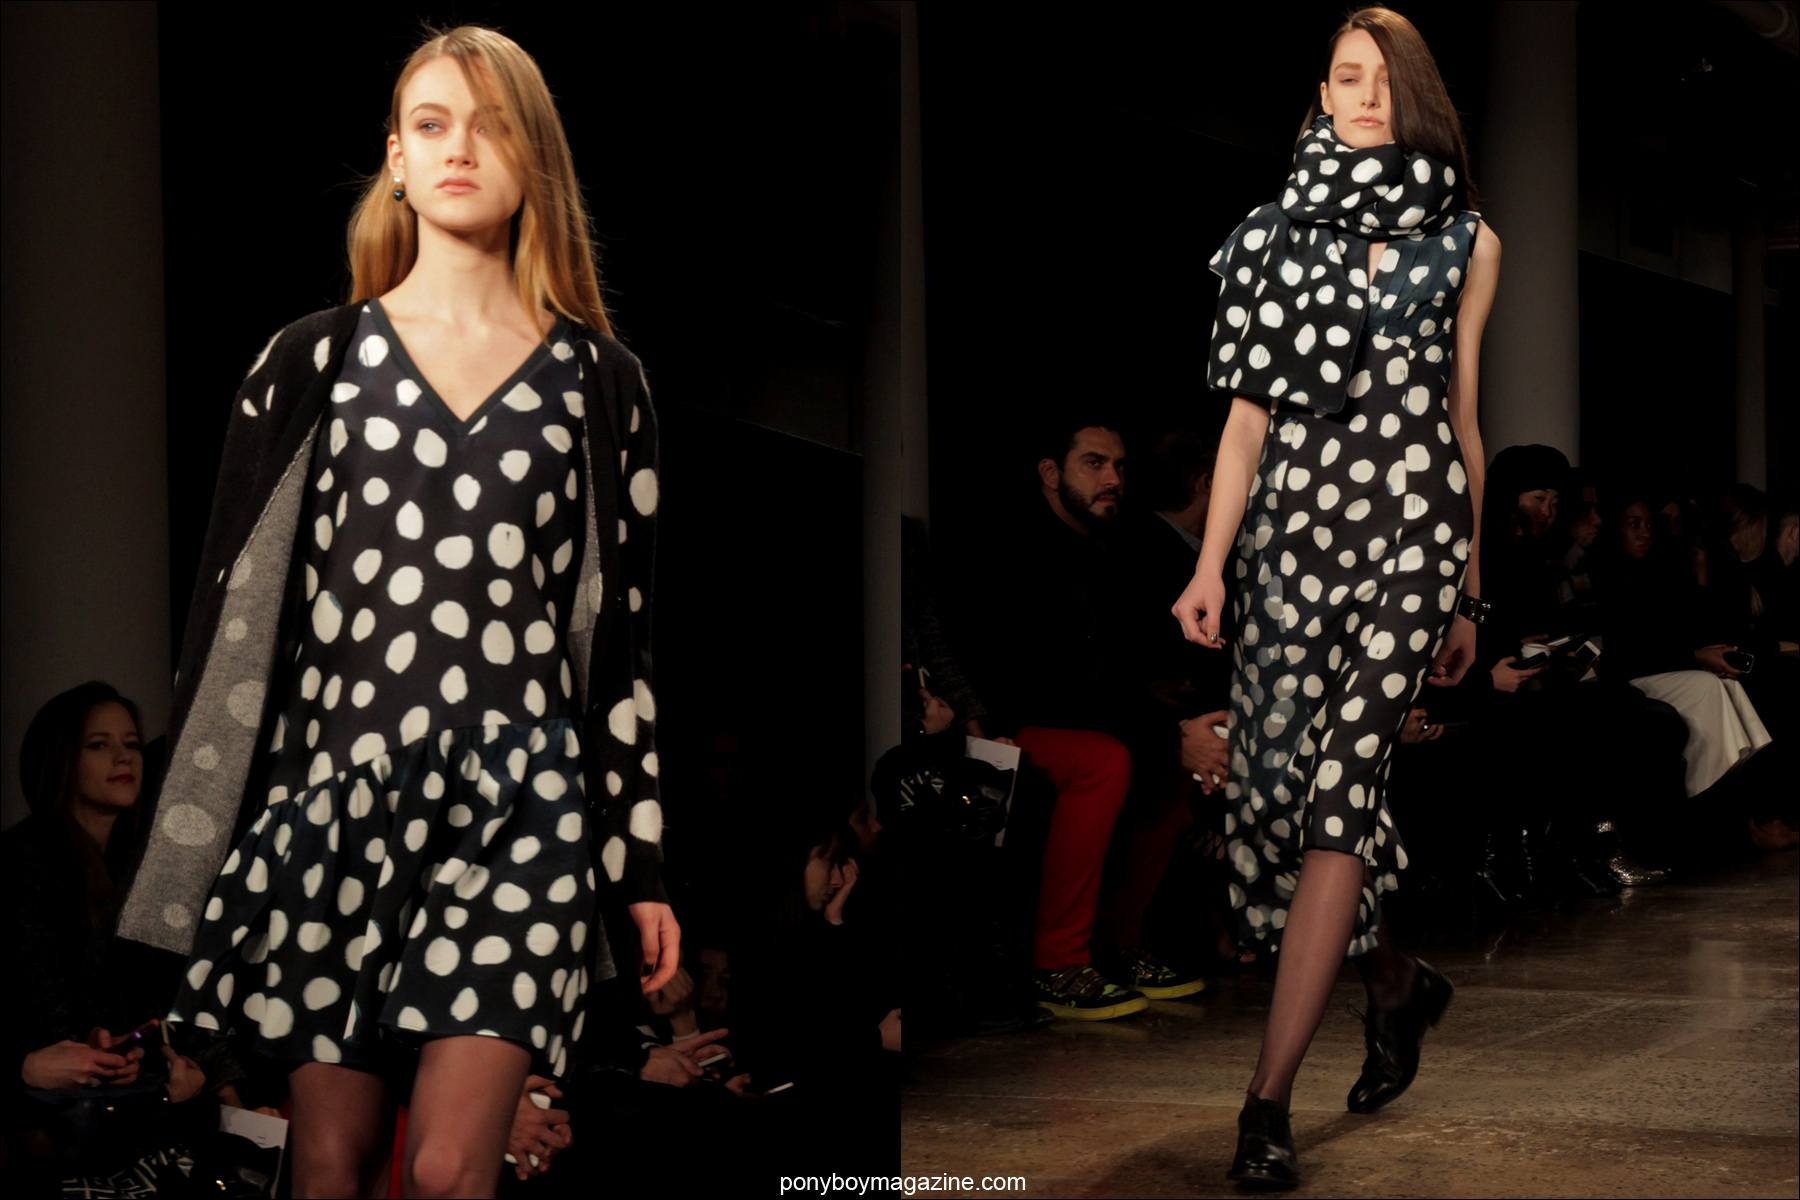 Polka dot womenswear on the runway at Timo Weiland A/W 2014 Collection at Milk Studios in New York City. Photograph by Alexander Thompson for Ponyboy Magazine.